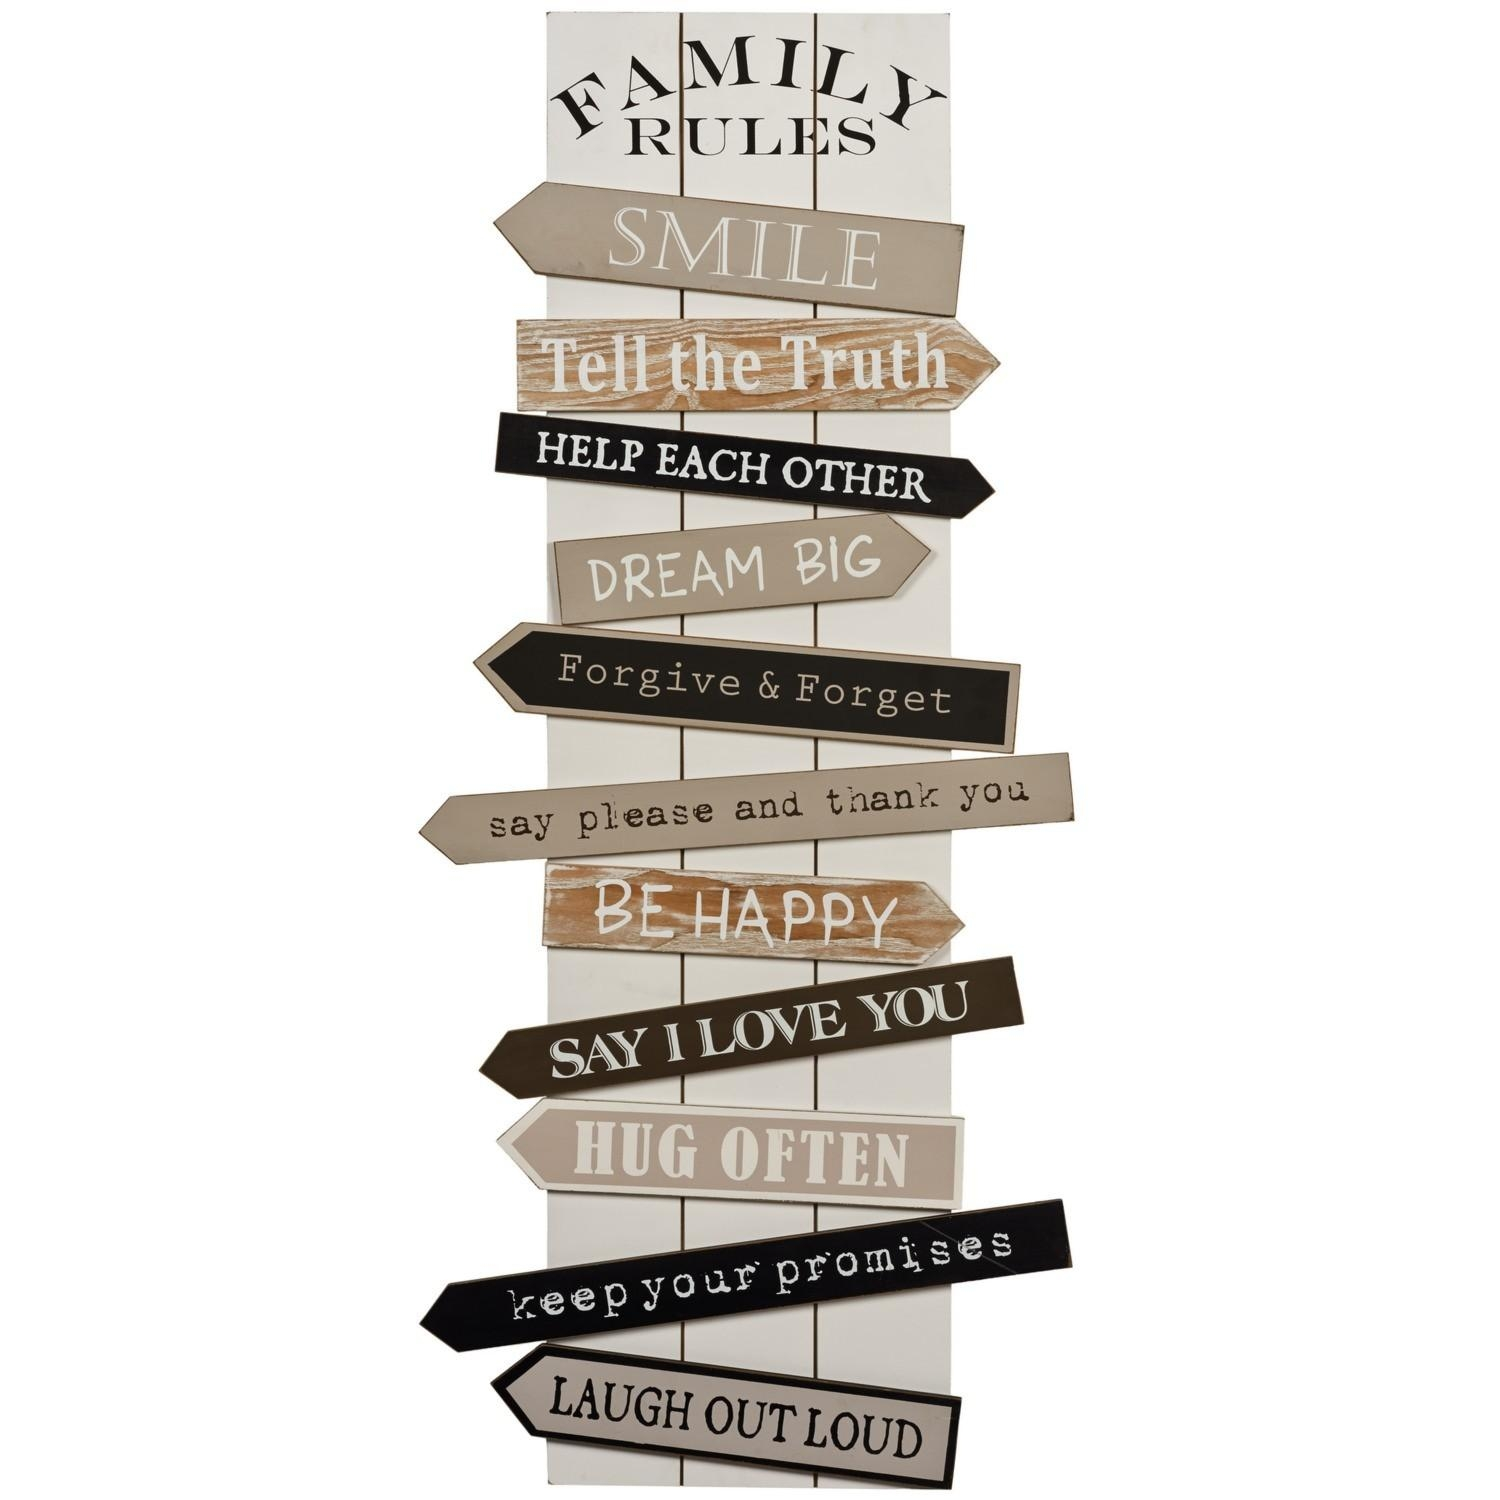 Wall Art Designs: Family Rules Wall Art Vintage Wall Art Wooden Within Wooden Words Wall Art (Image 11 of 20)